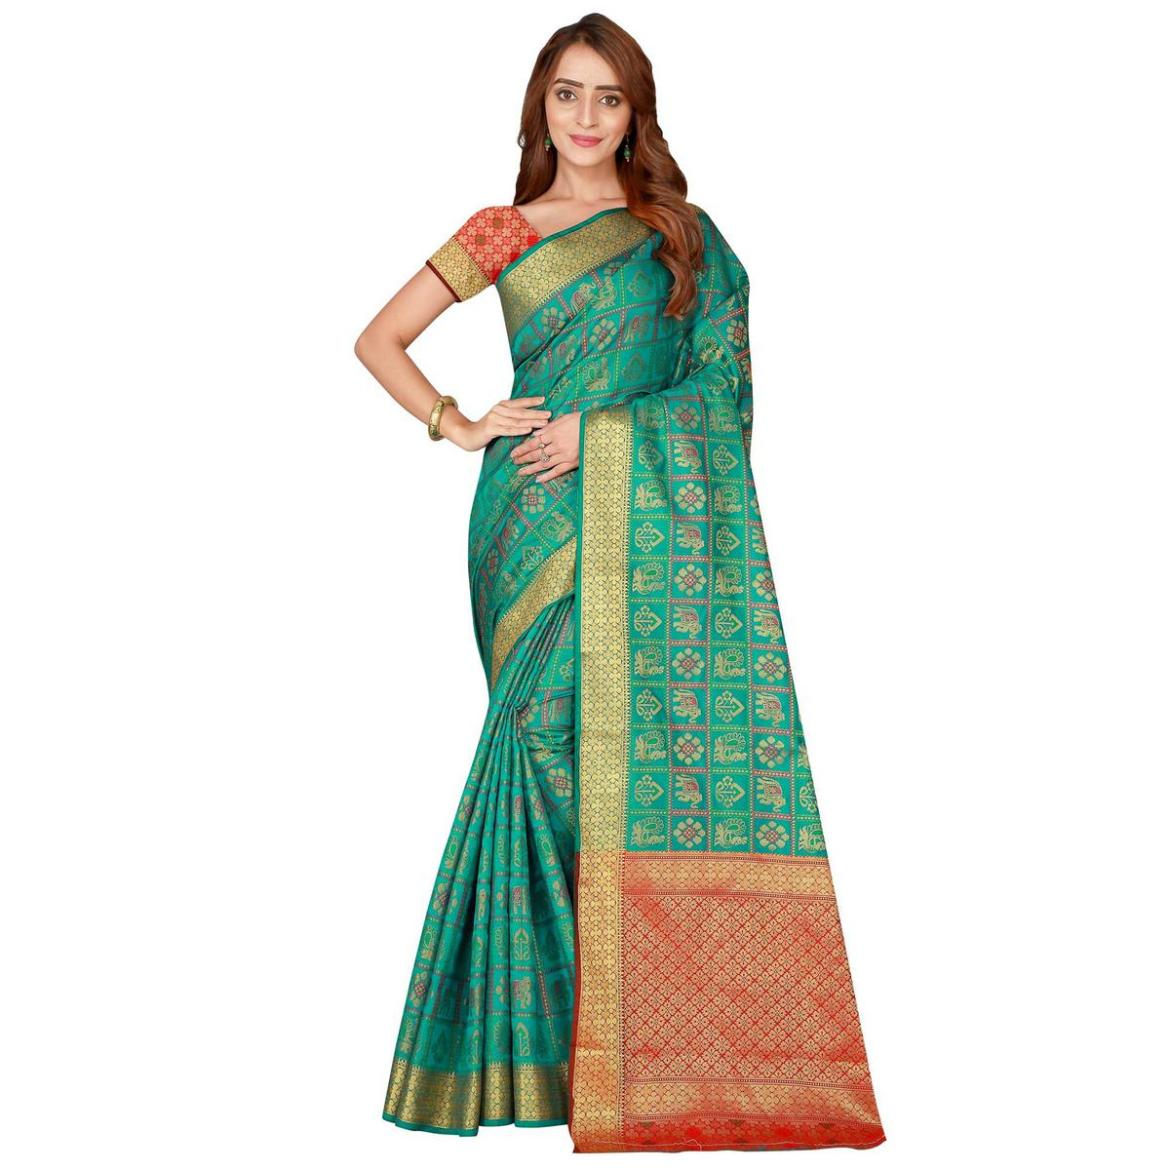 Engrossing Turquoise Green Colored festive Wear silk Saree